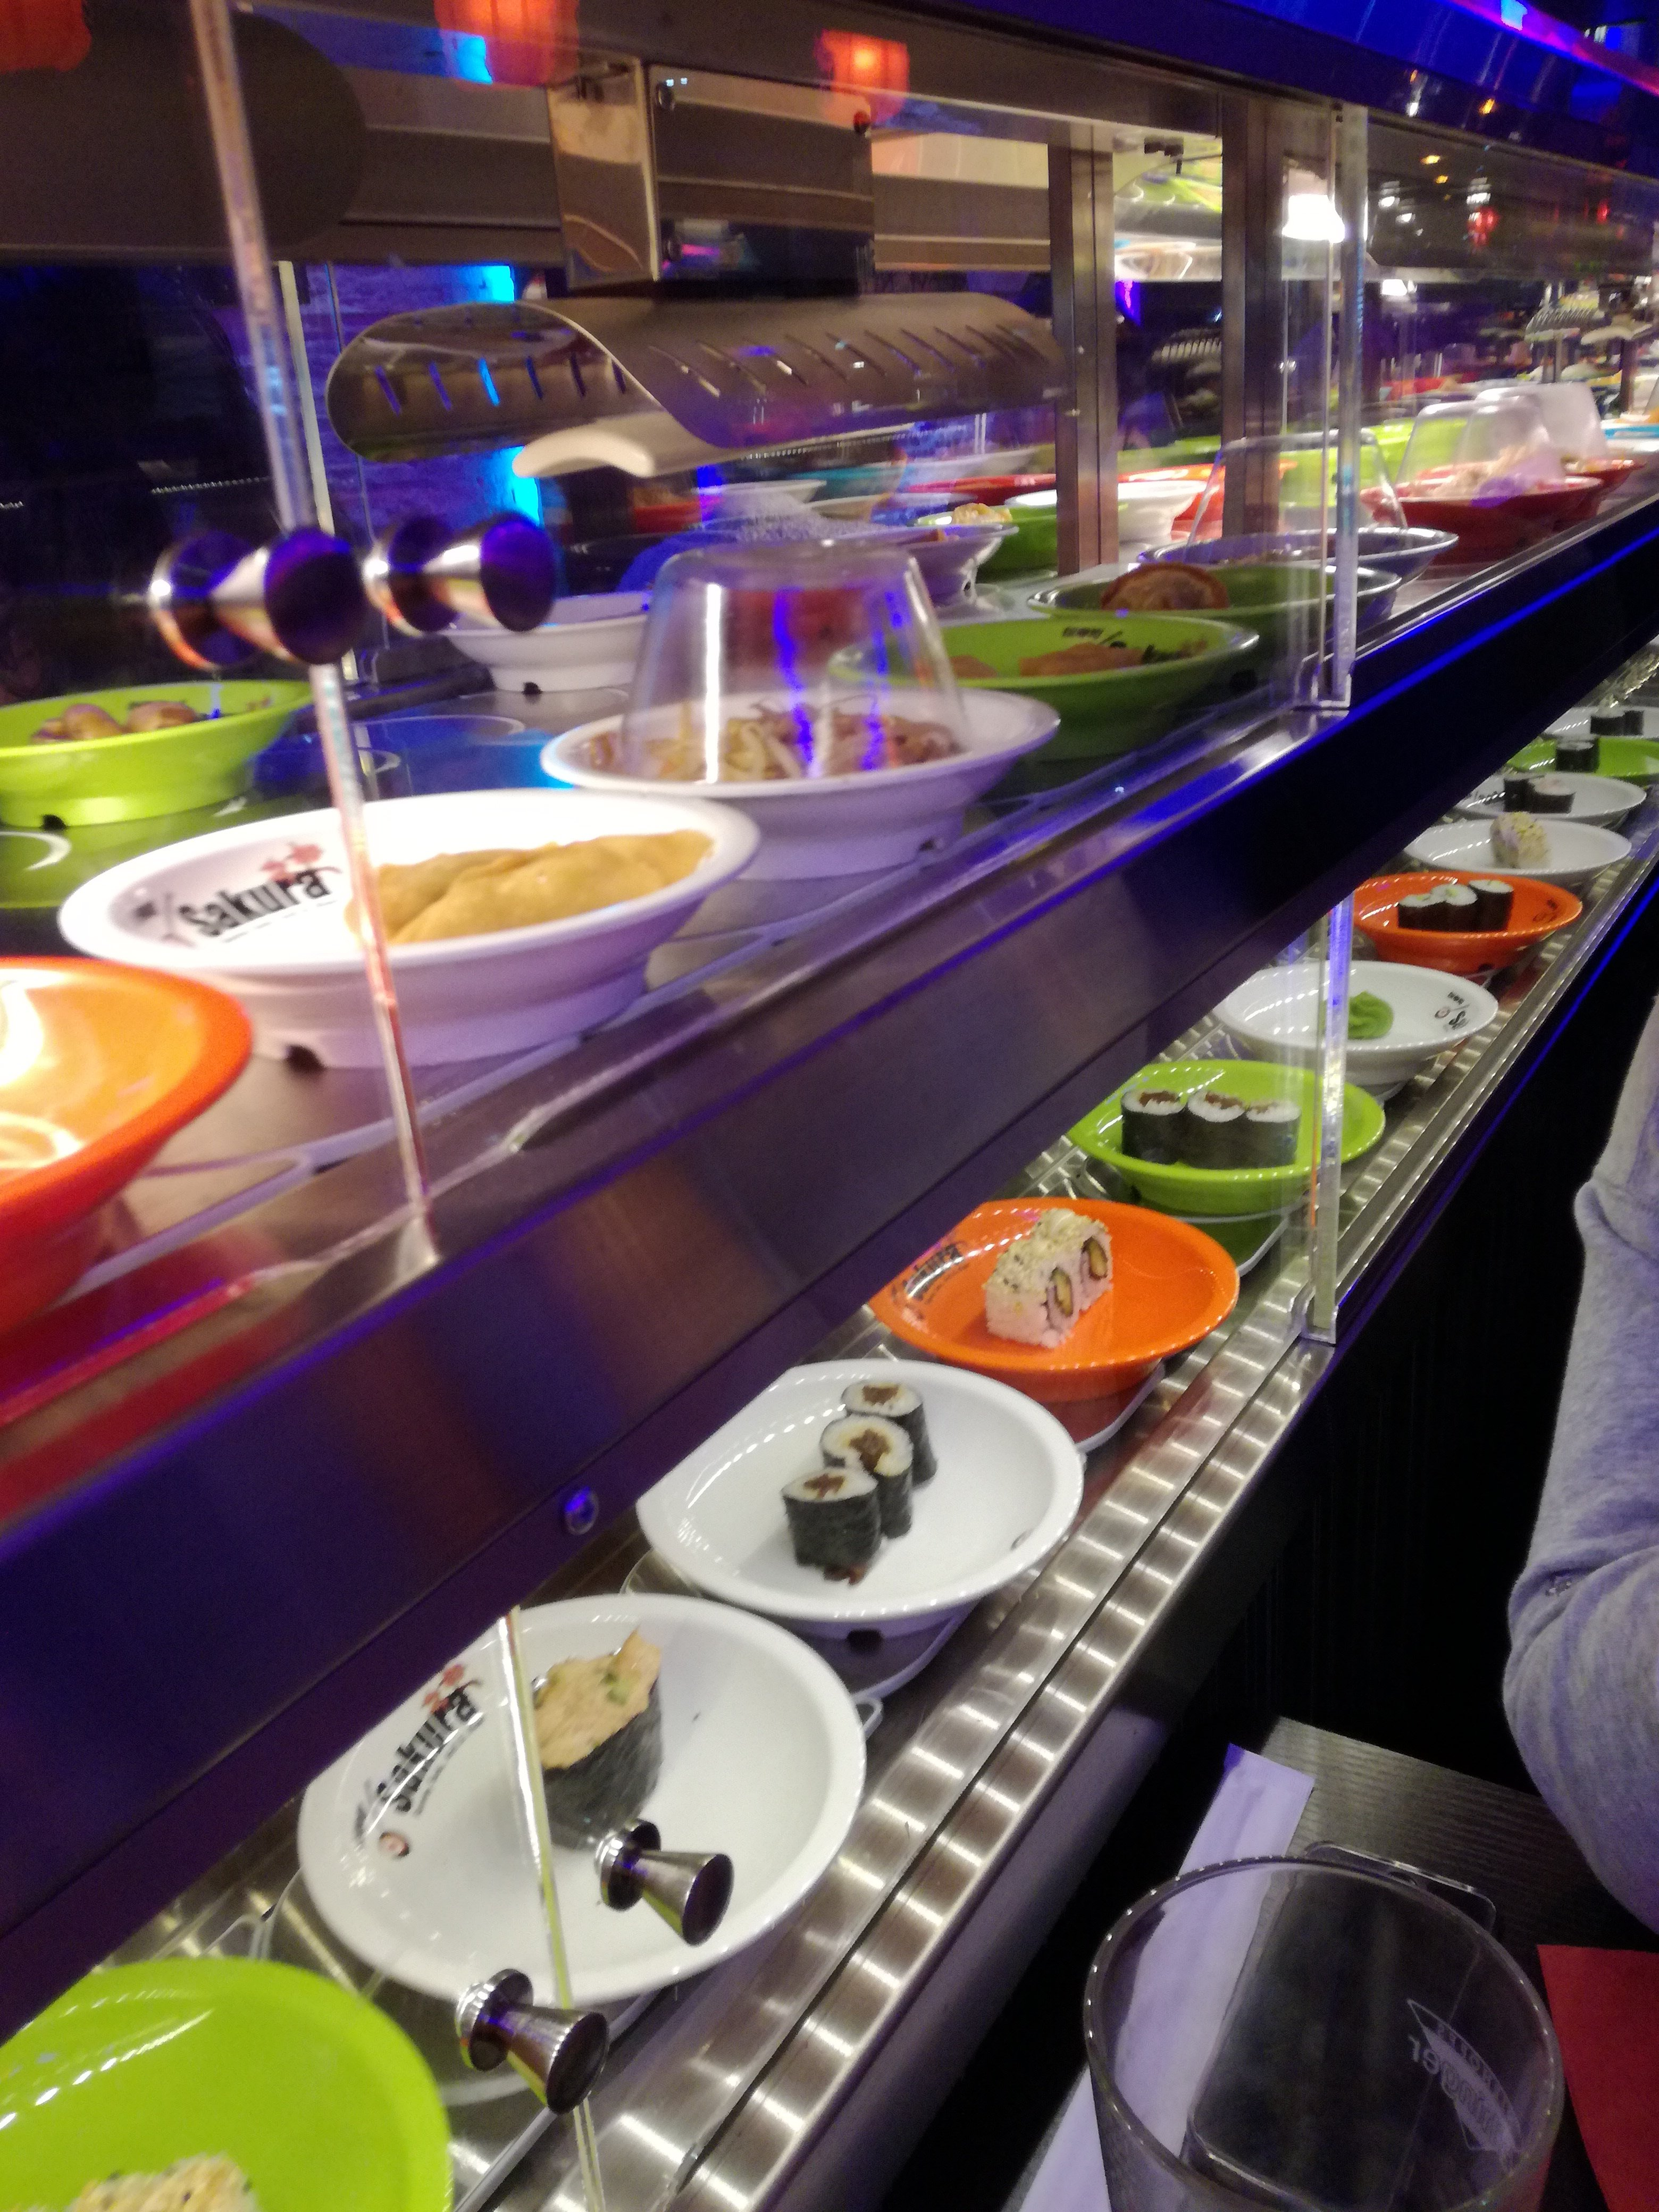 Things To Do in Sushi, Restaurants in Sushi